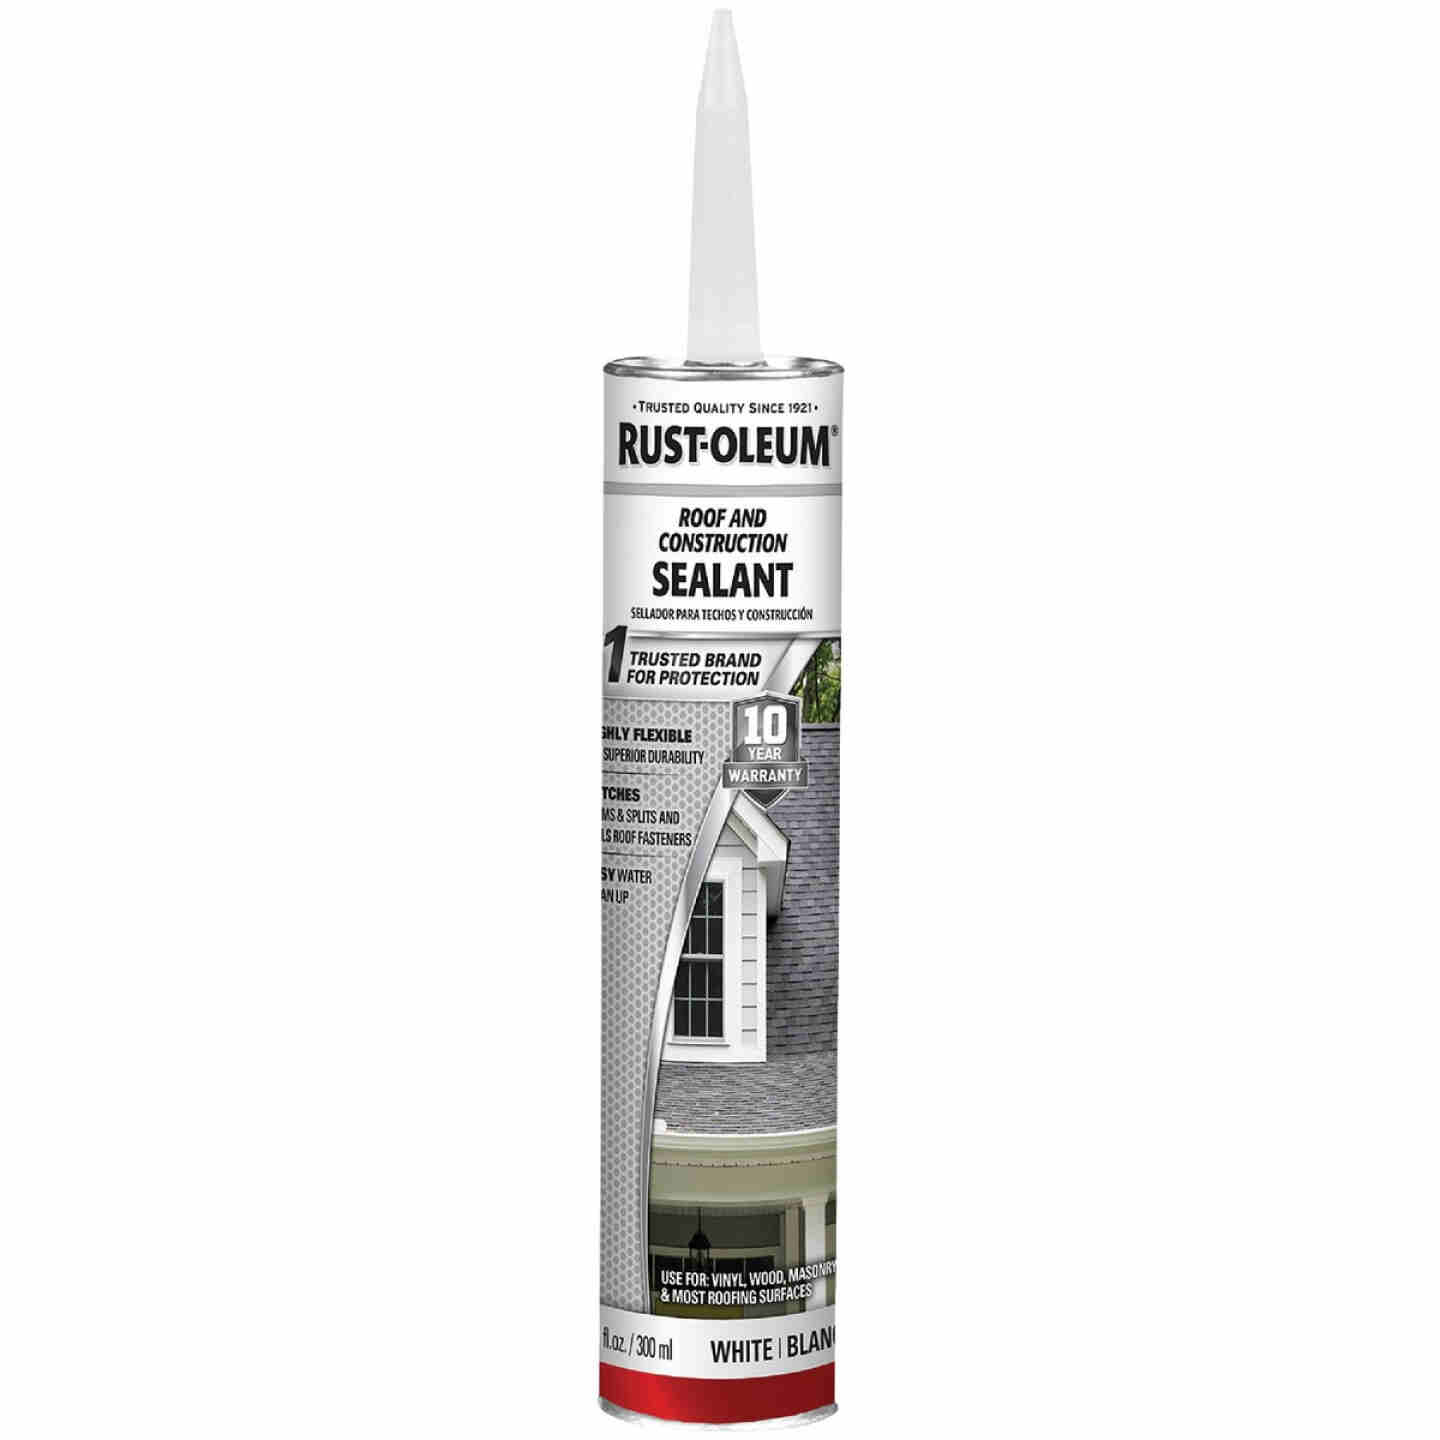 Rust-Oleum 10.1 Oz. Roof and Construction Sealant Image 1